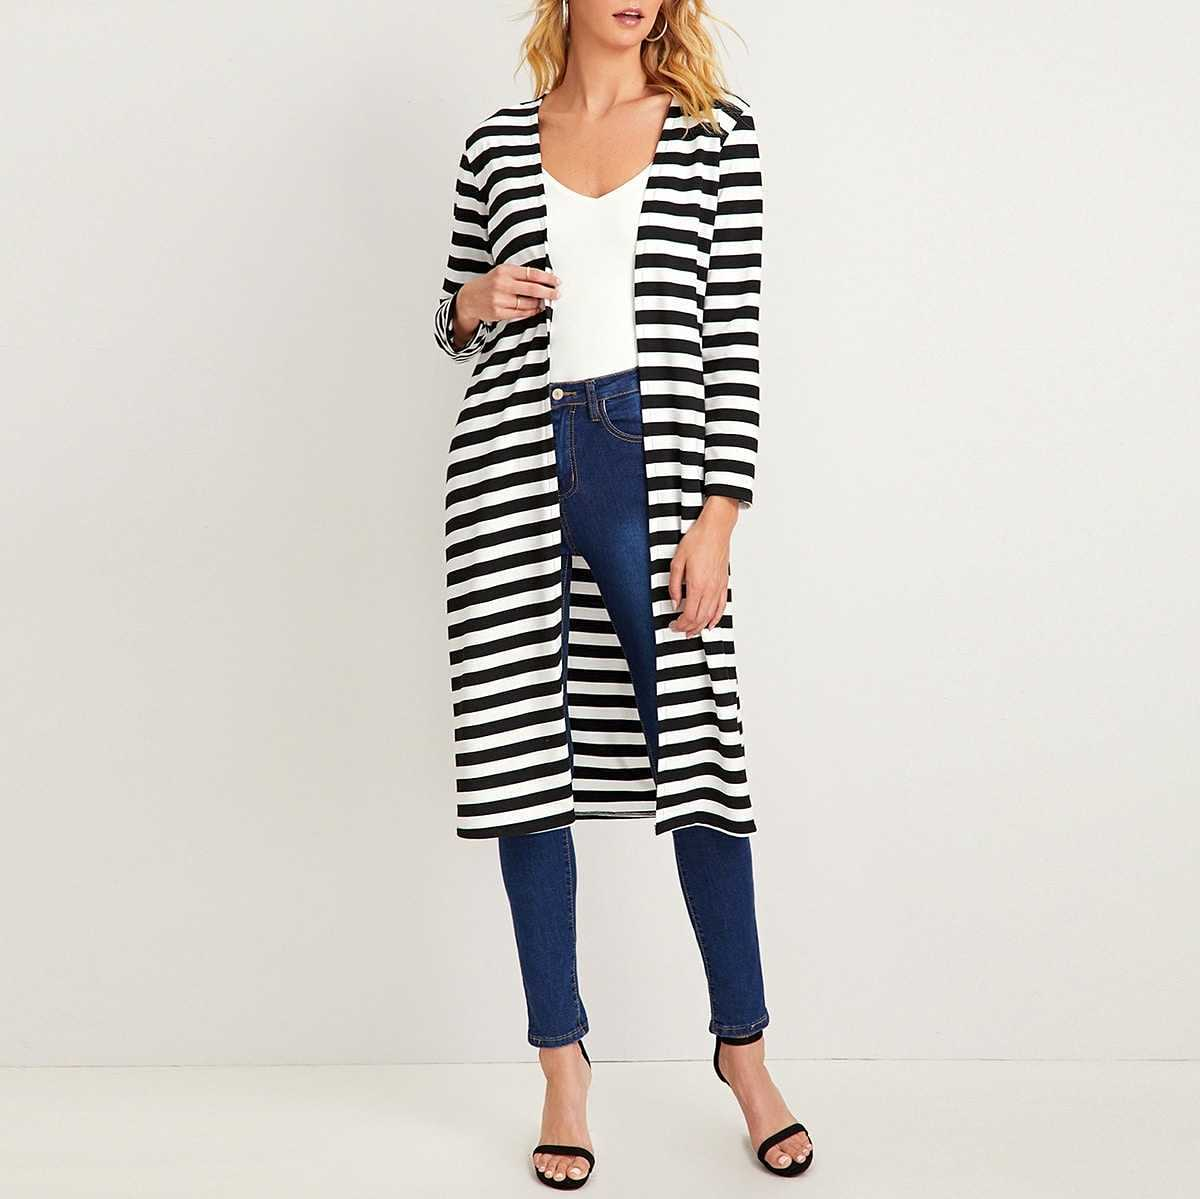 Black And White Striped Longline Cardigan in Black and White by ROMWE on GOOFASH